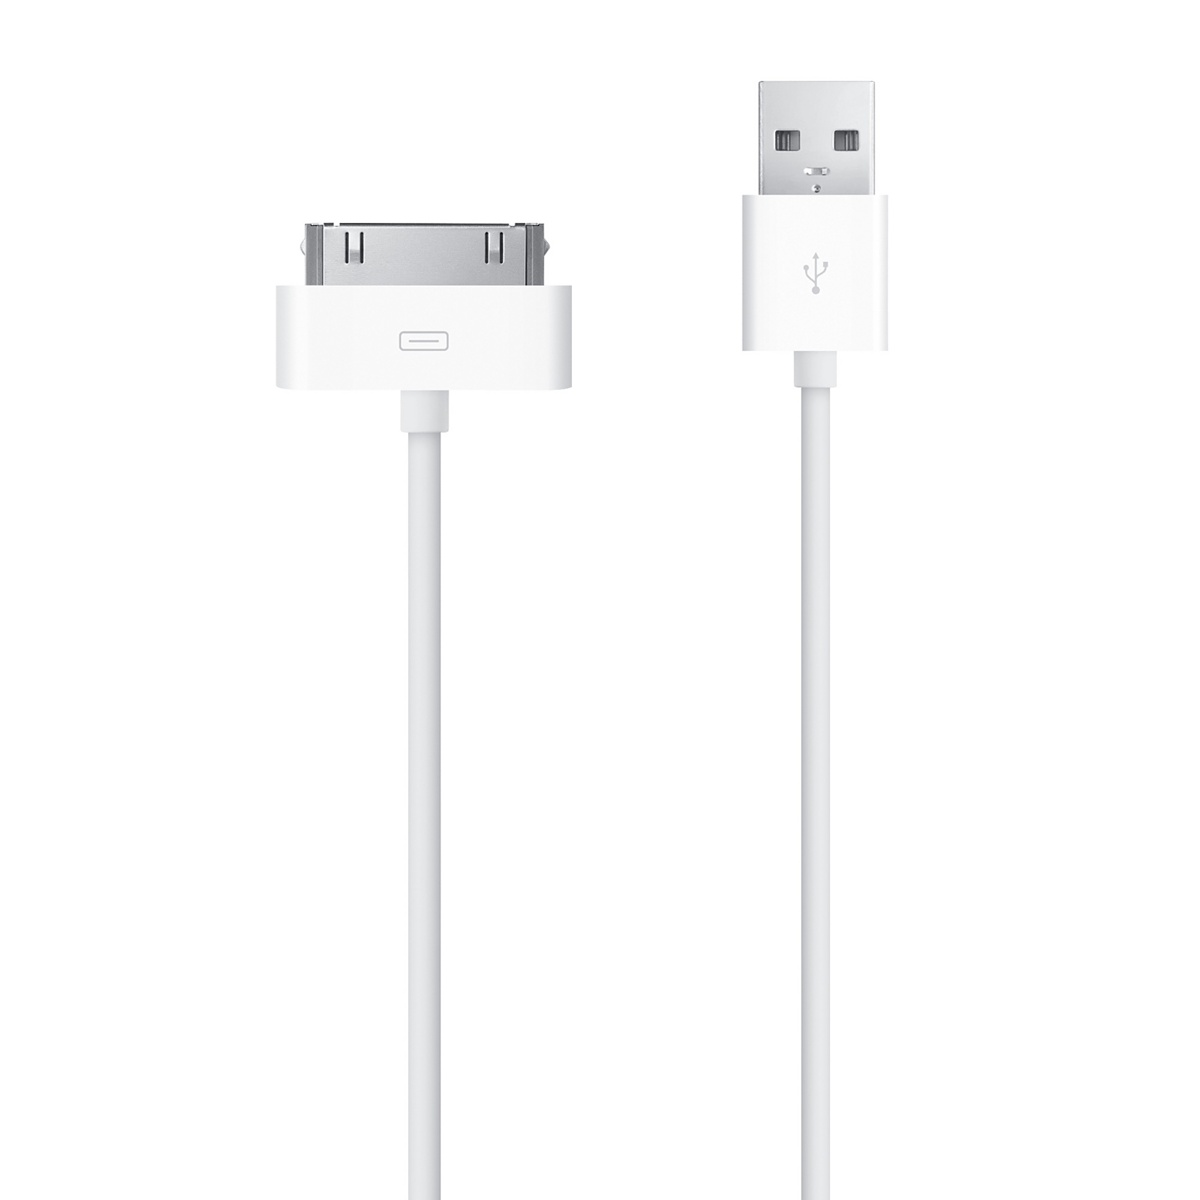 30 Pin USB Cable - 10 ft.